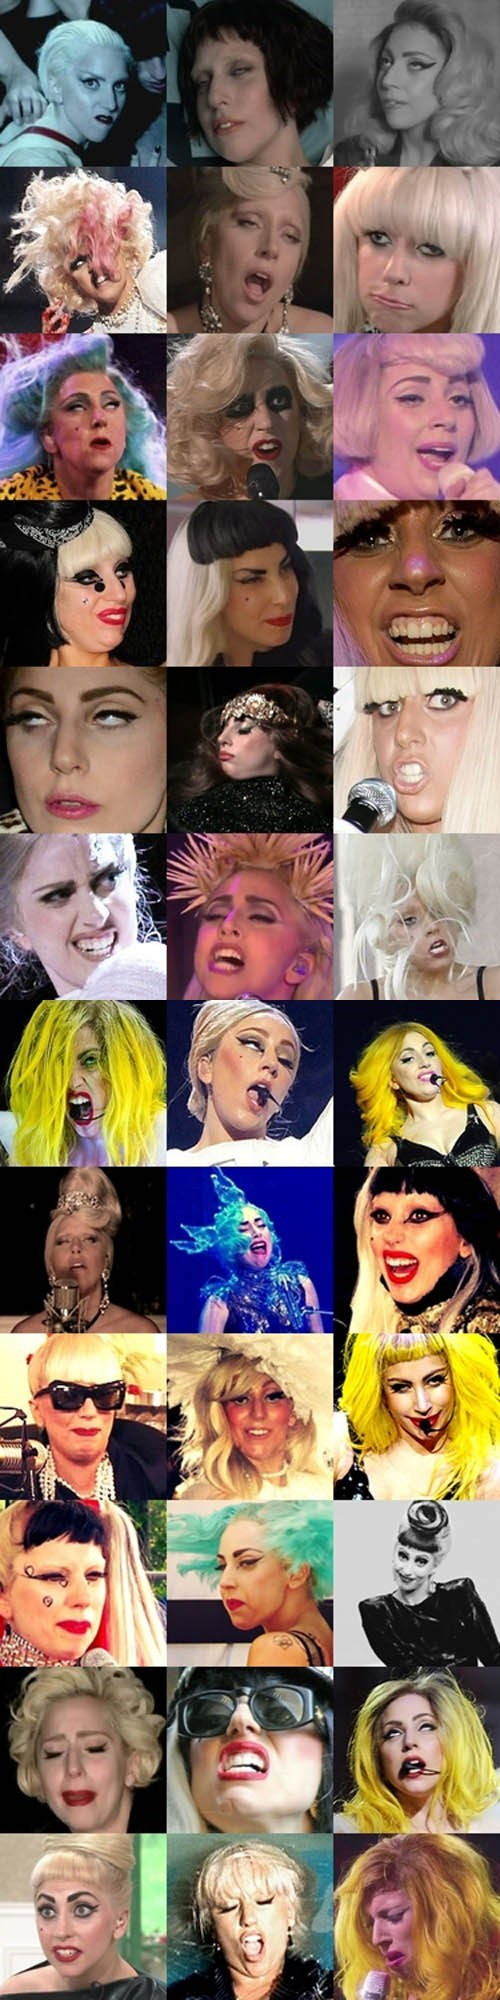 Lady Gaga is Queen of Pop and Derp